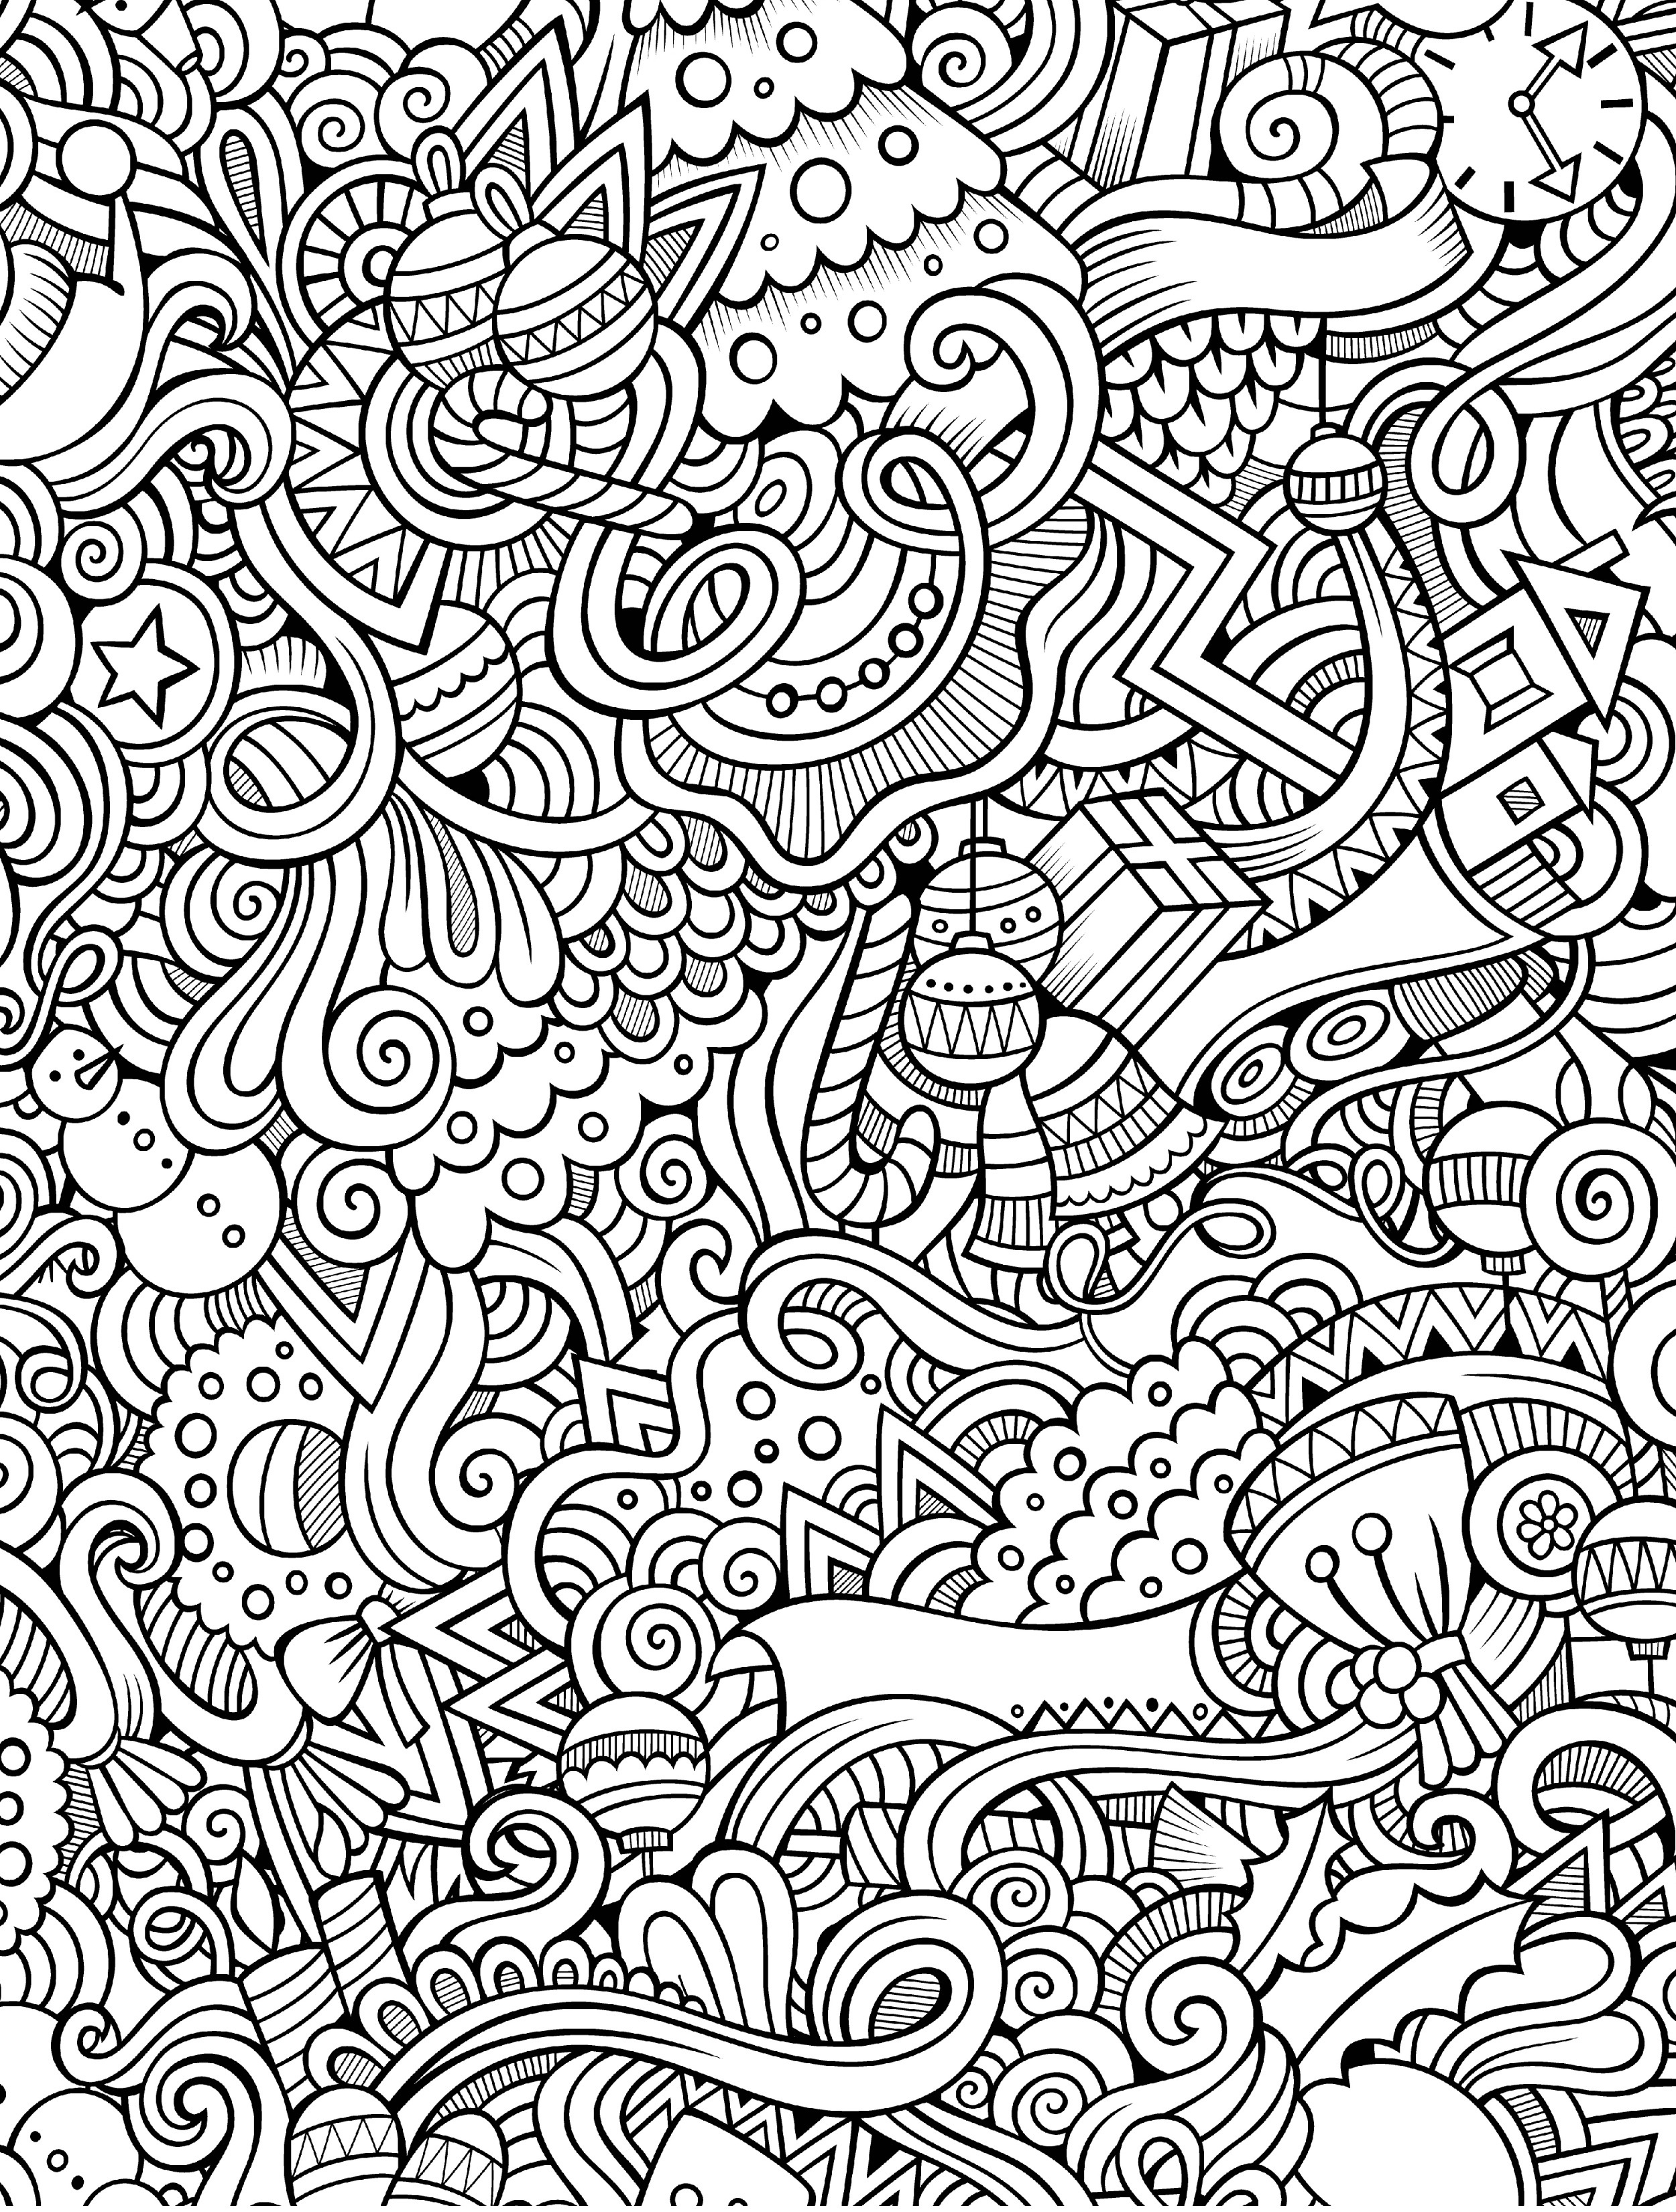 10 Free Printable Holiday Adult Coloring Pages - Free Printable Coloring Sheets